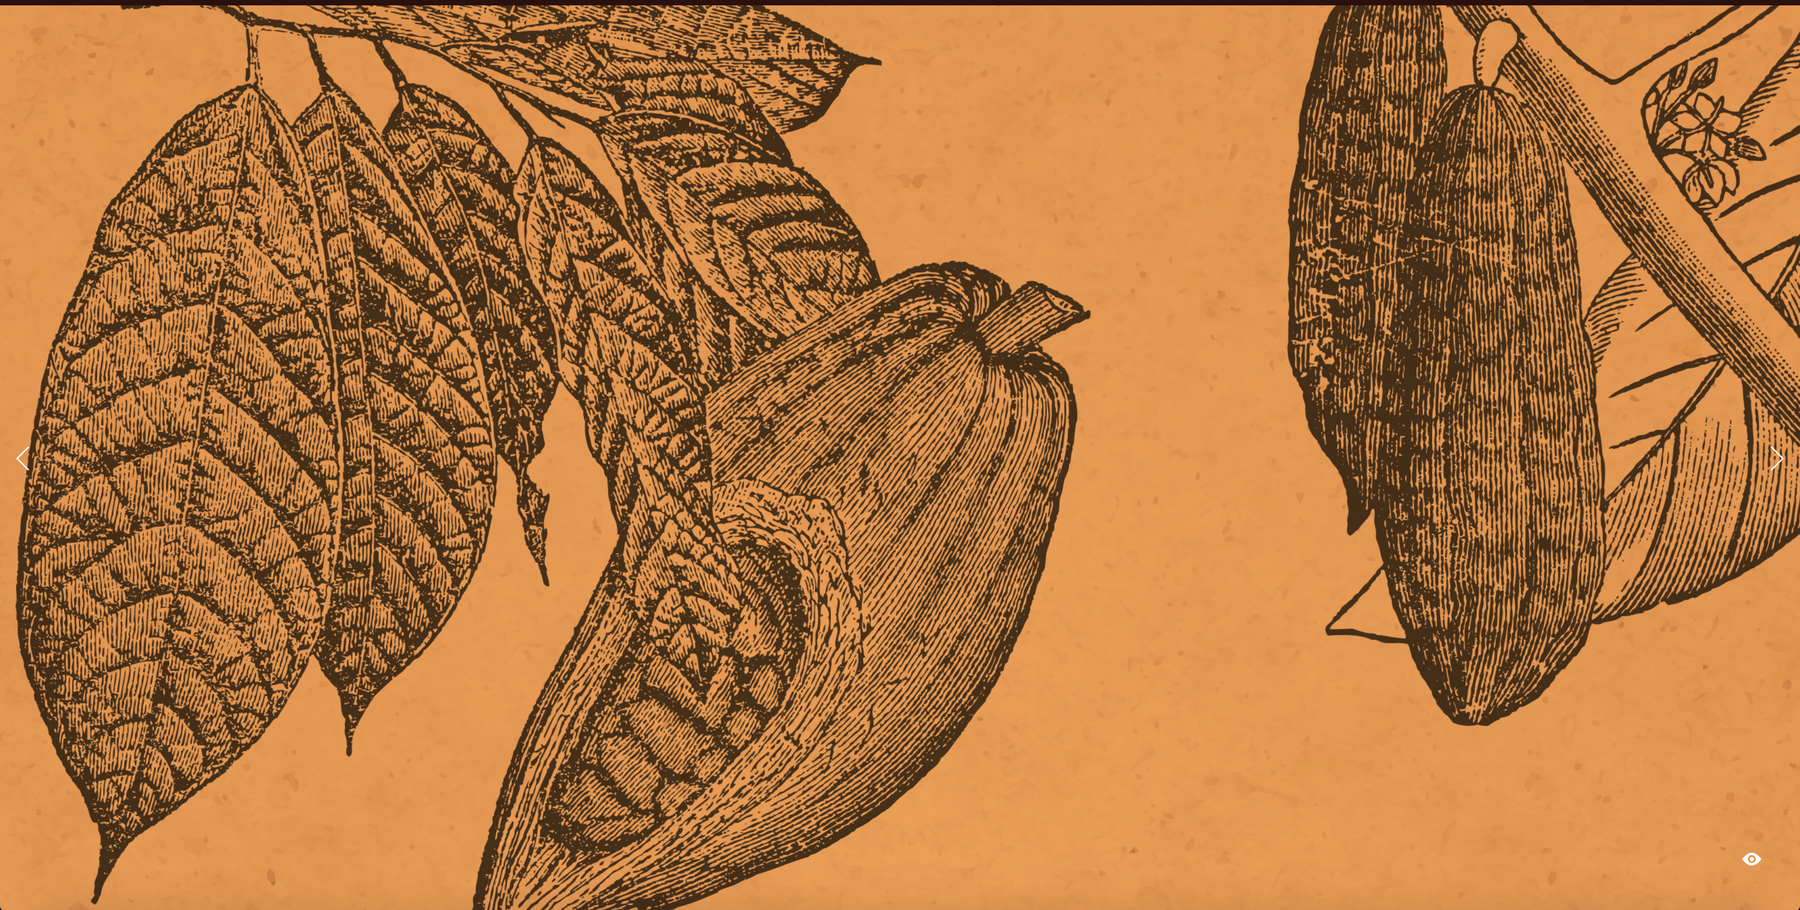 Vintage sketch of cacao beans growing on a branch on an orange background